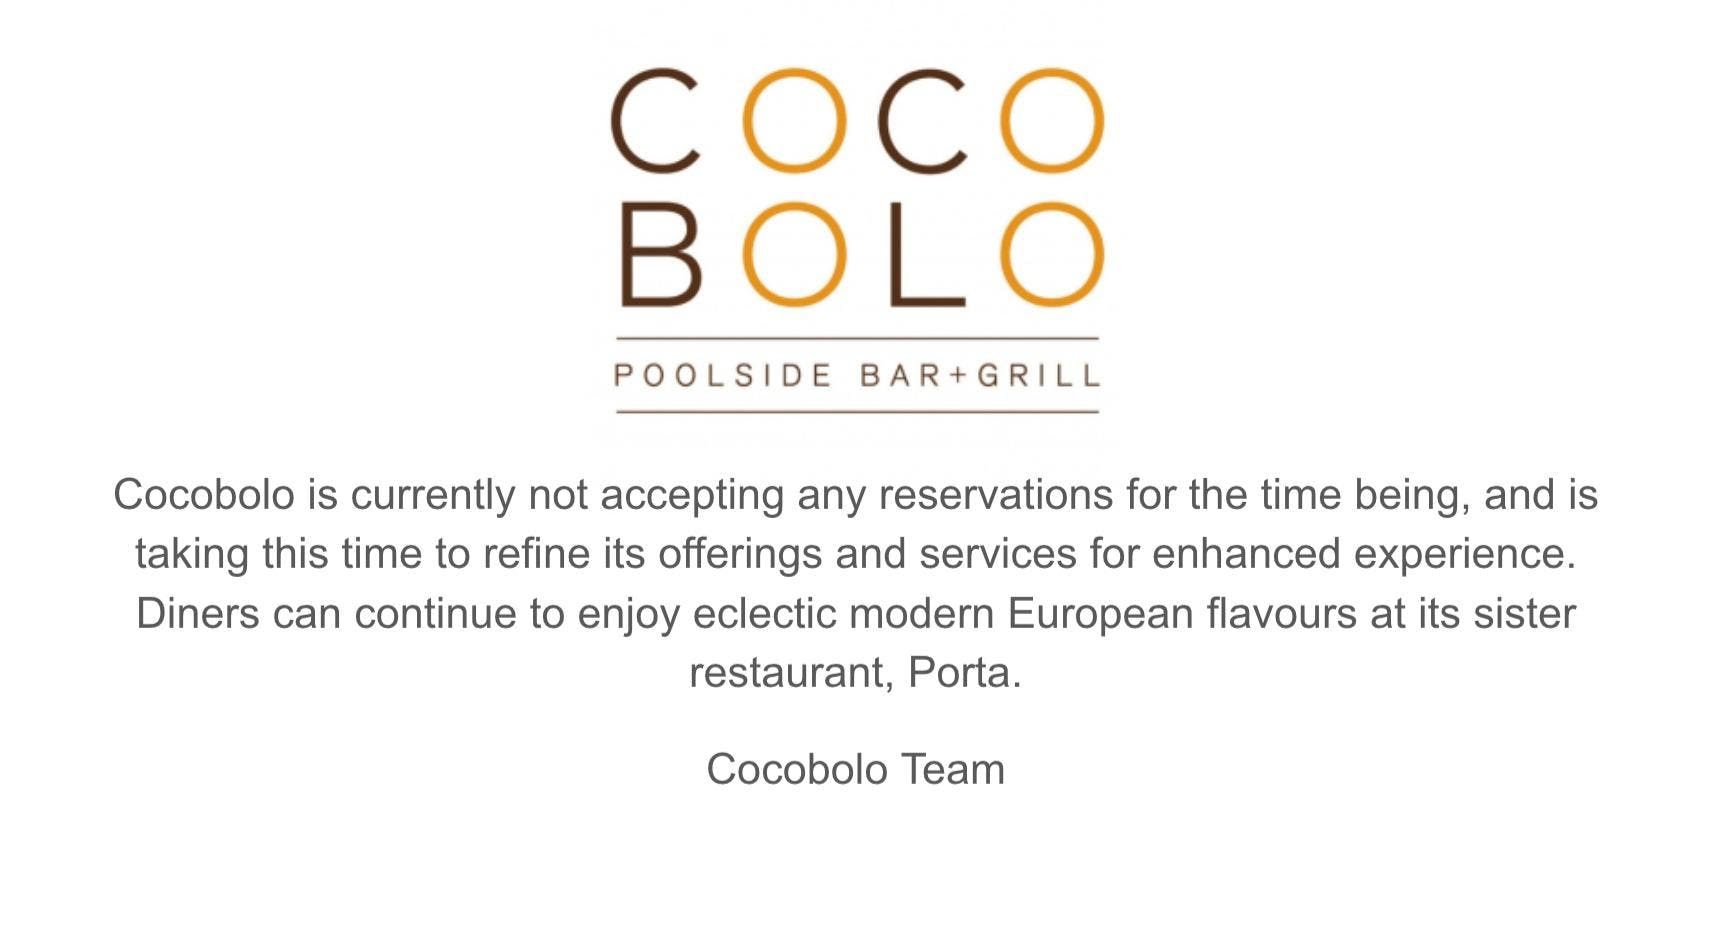 Cocobolo Poolside Bar + Grill